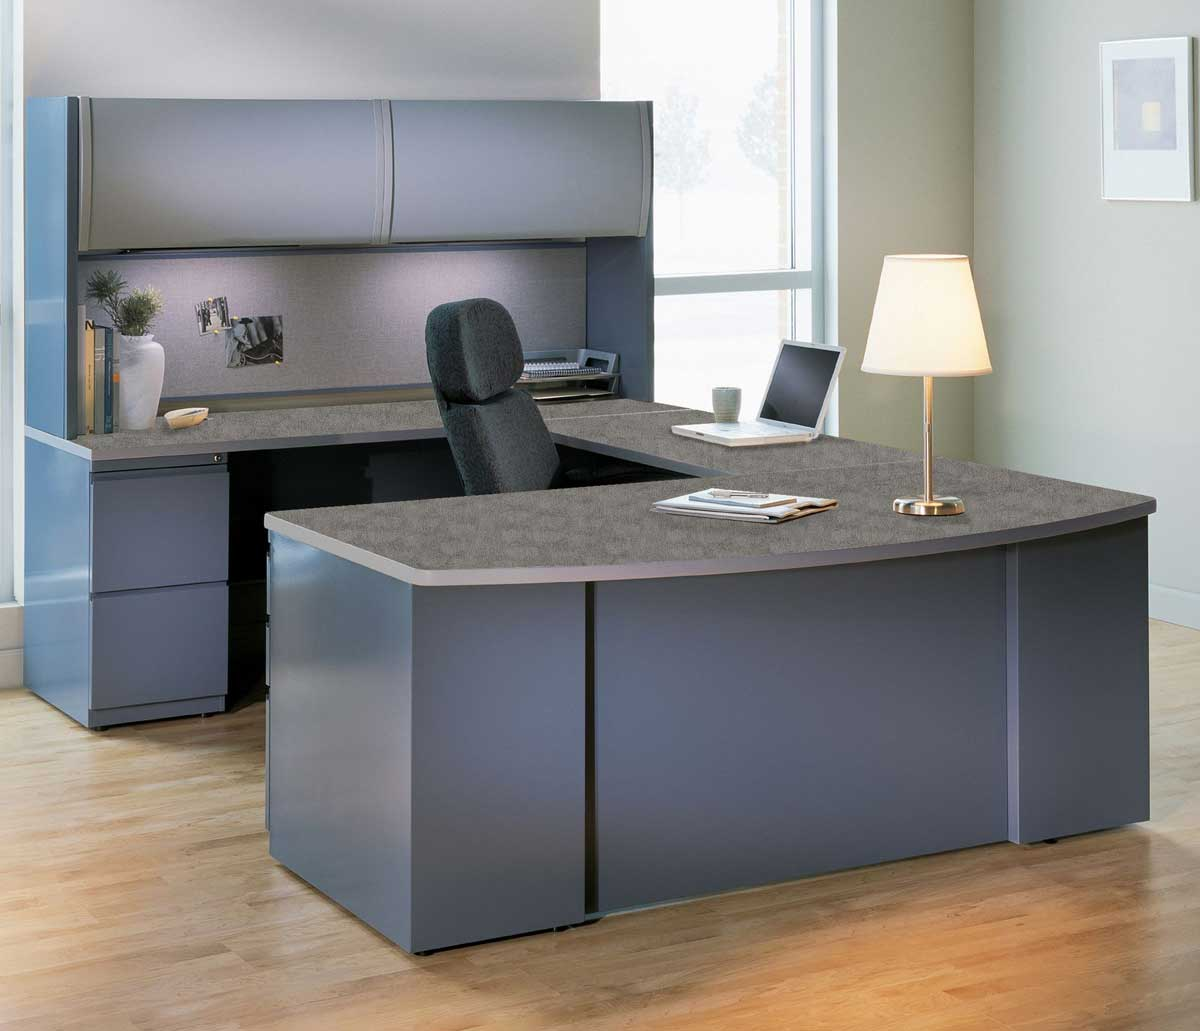 Modular workstation furniture office furniture - Office furnitur ...